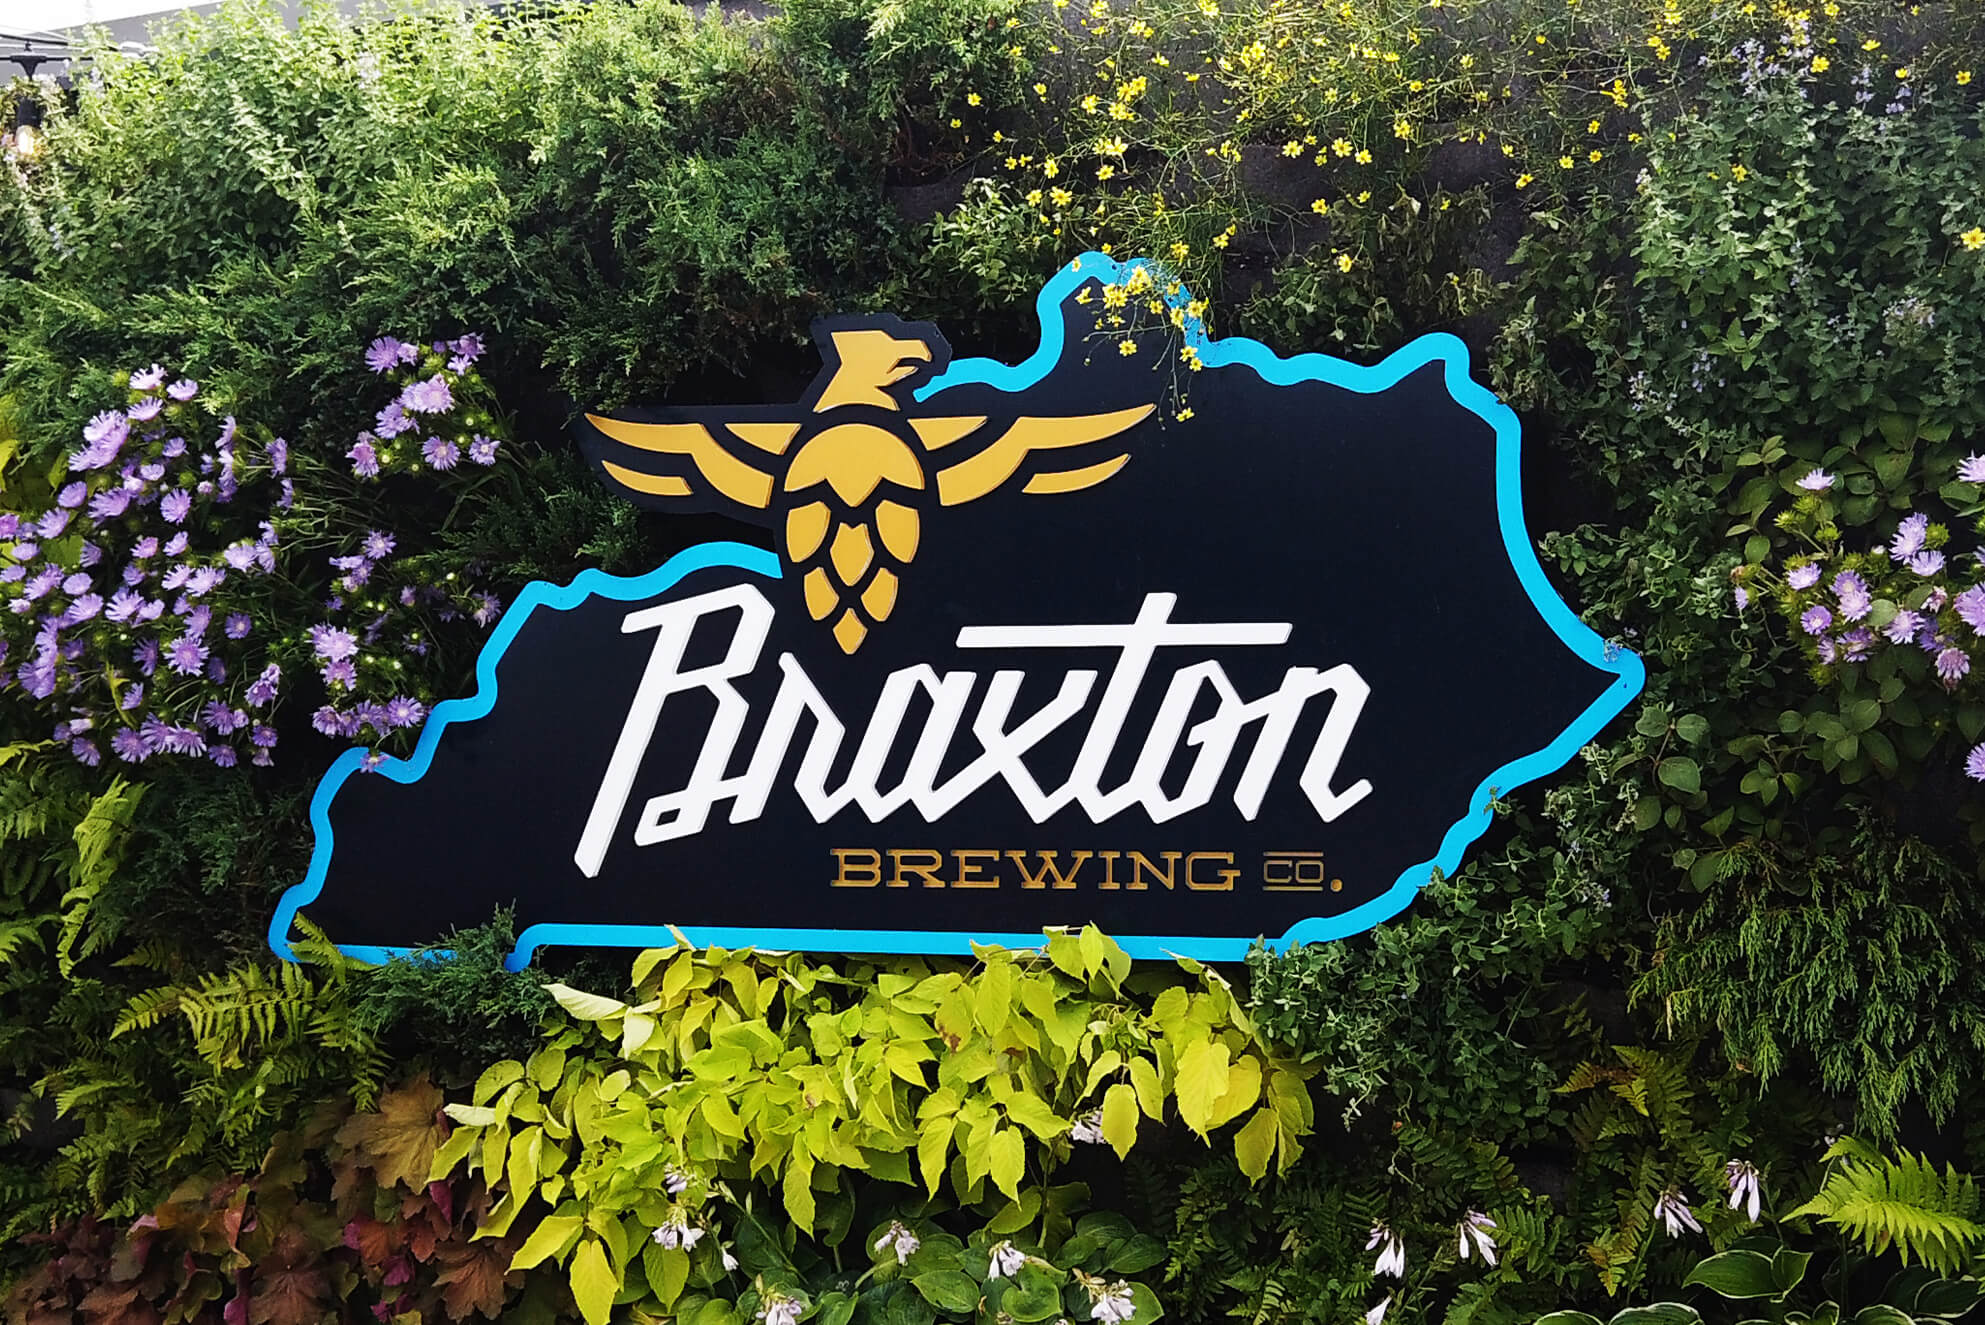 A custom order for a popular local brewery installed on a live wall.